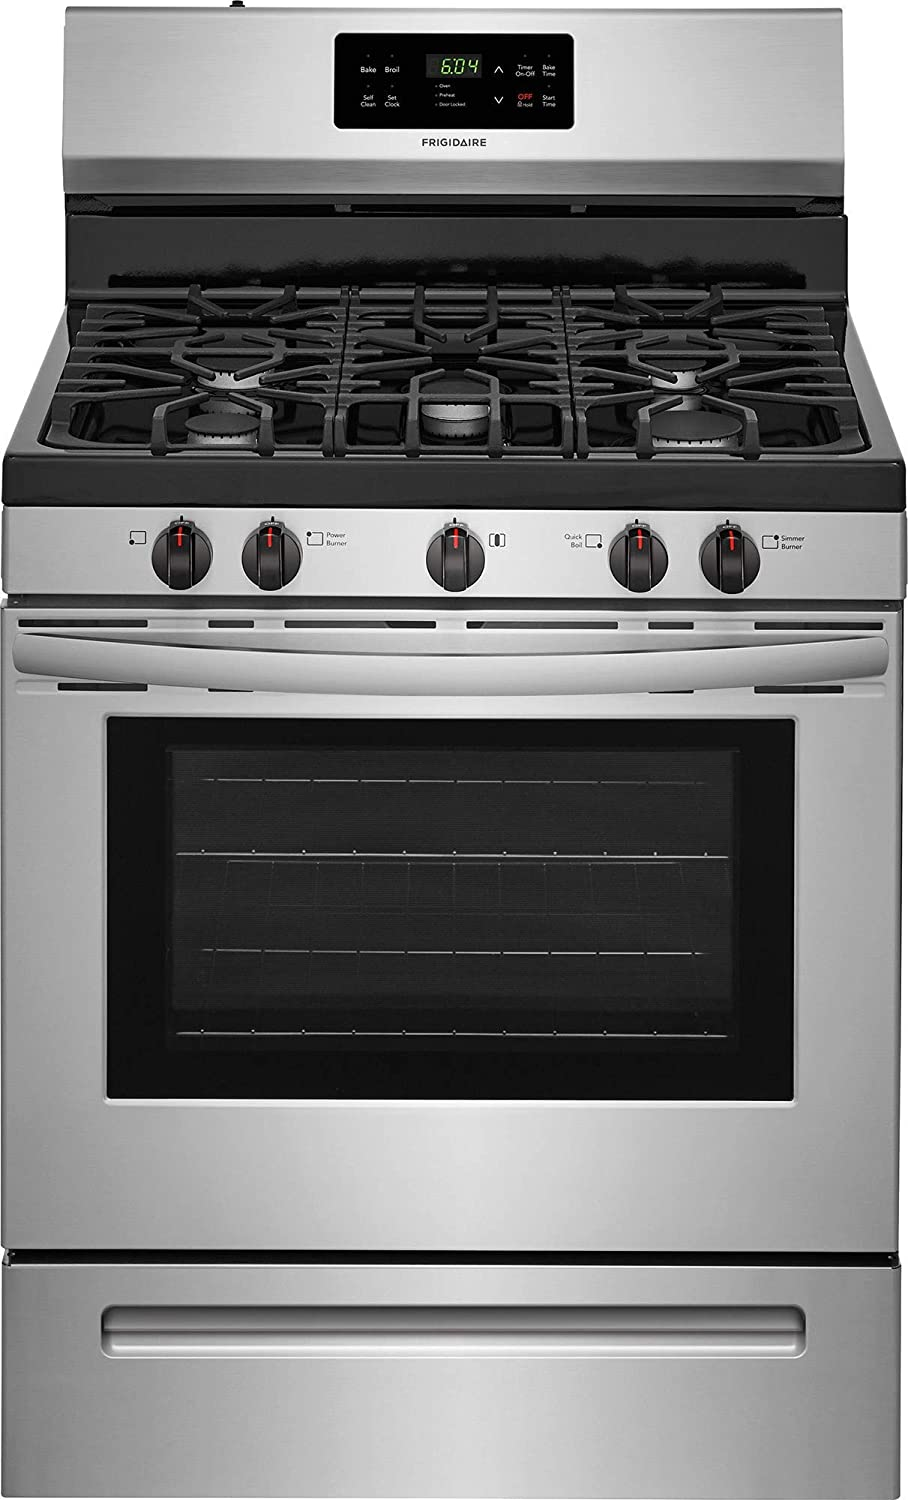 Frigidaire FFGF3054TS 30 Inch Gas Freestanding Range with 5 Sealed Burner Cooktop, 5 cu. ft. Primary Oven Capacity, in Stainless Steel (Certified Refurbished)